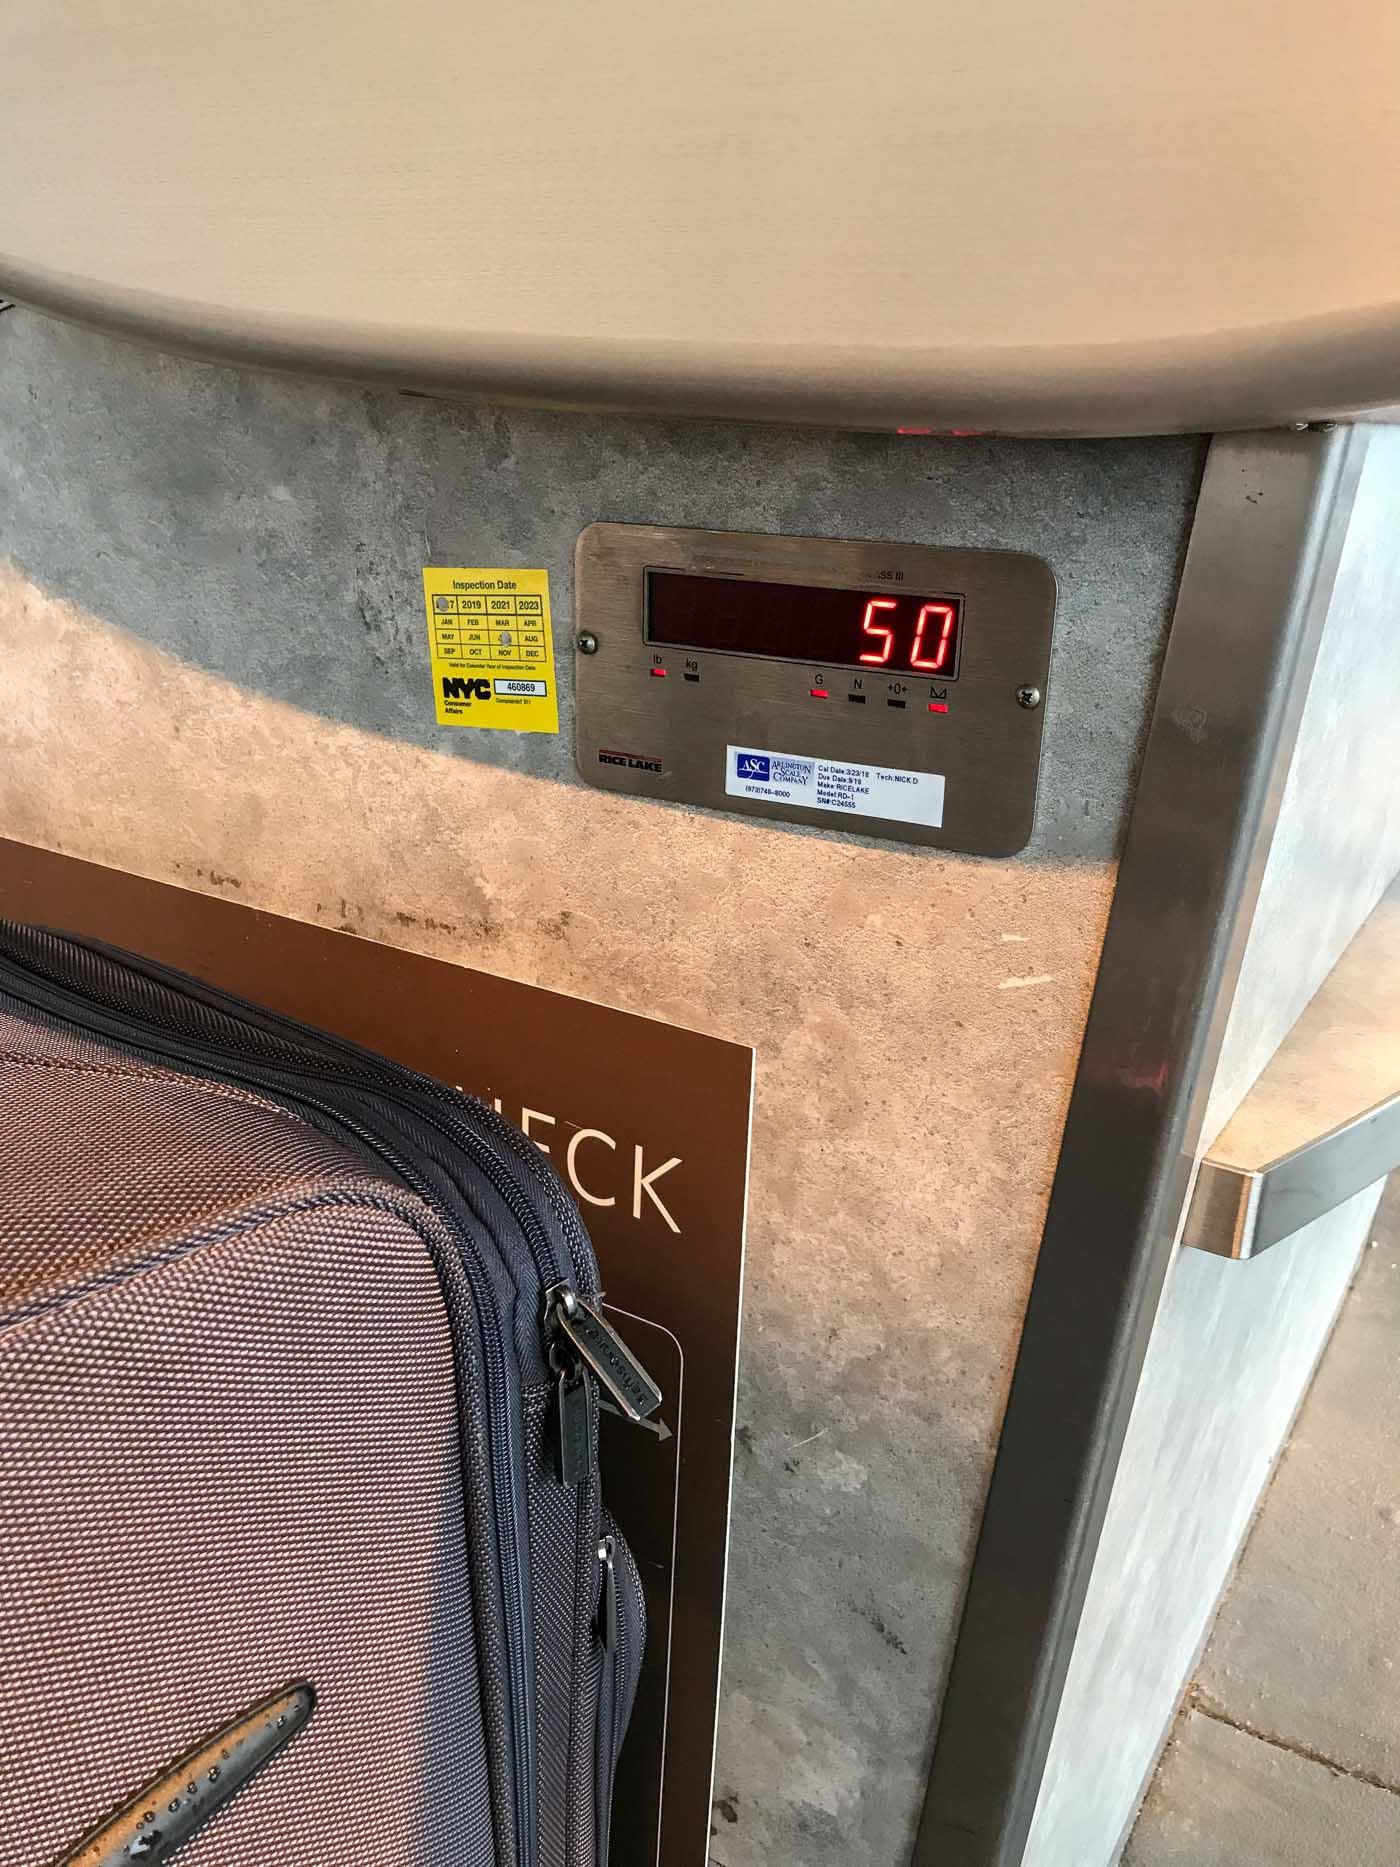 Baggage weight of 50